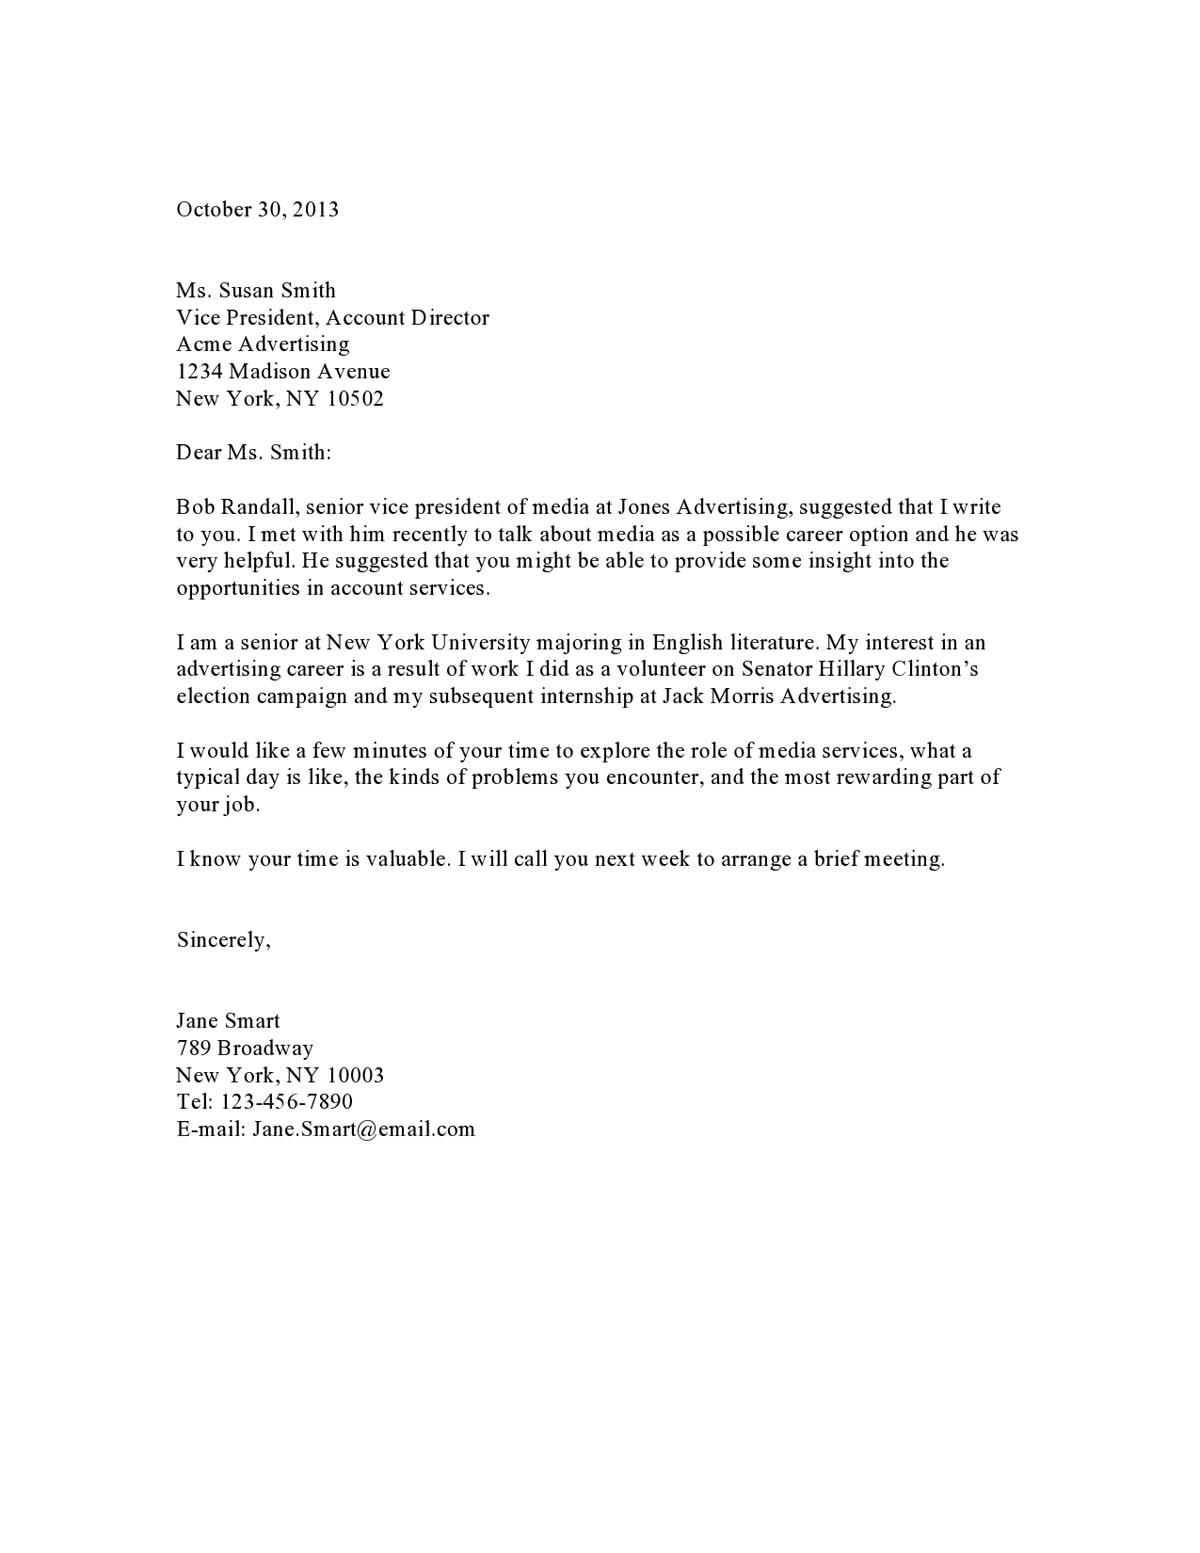 Sample cover letter for applying a job for Cover letter sampels